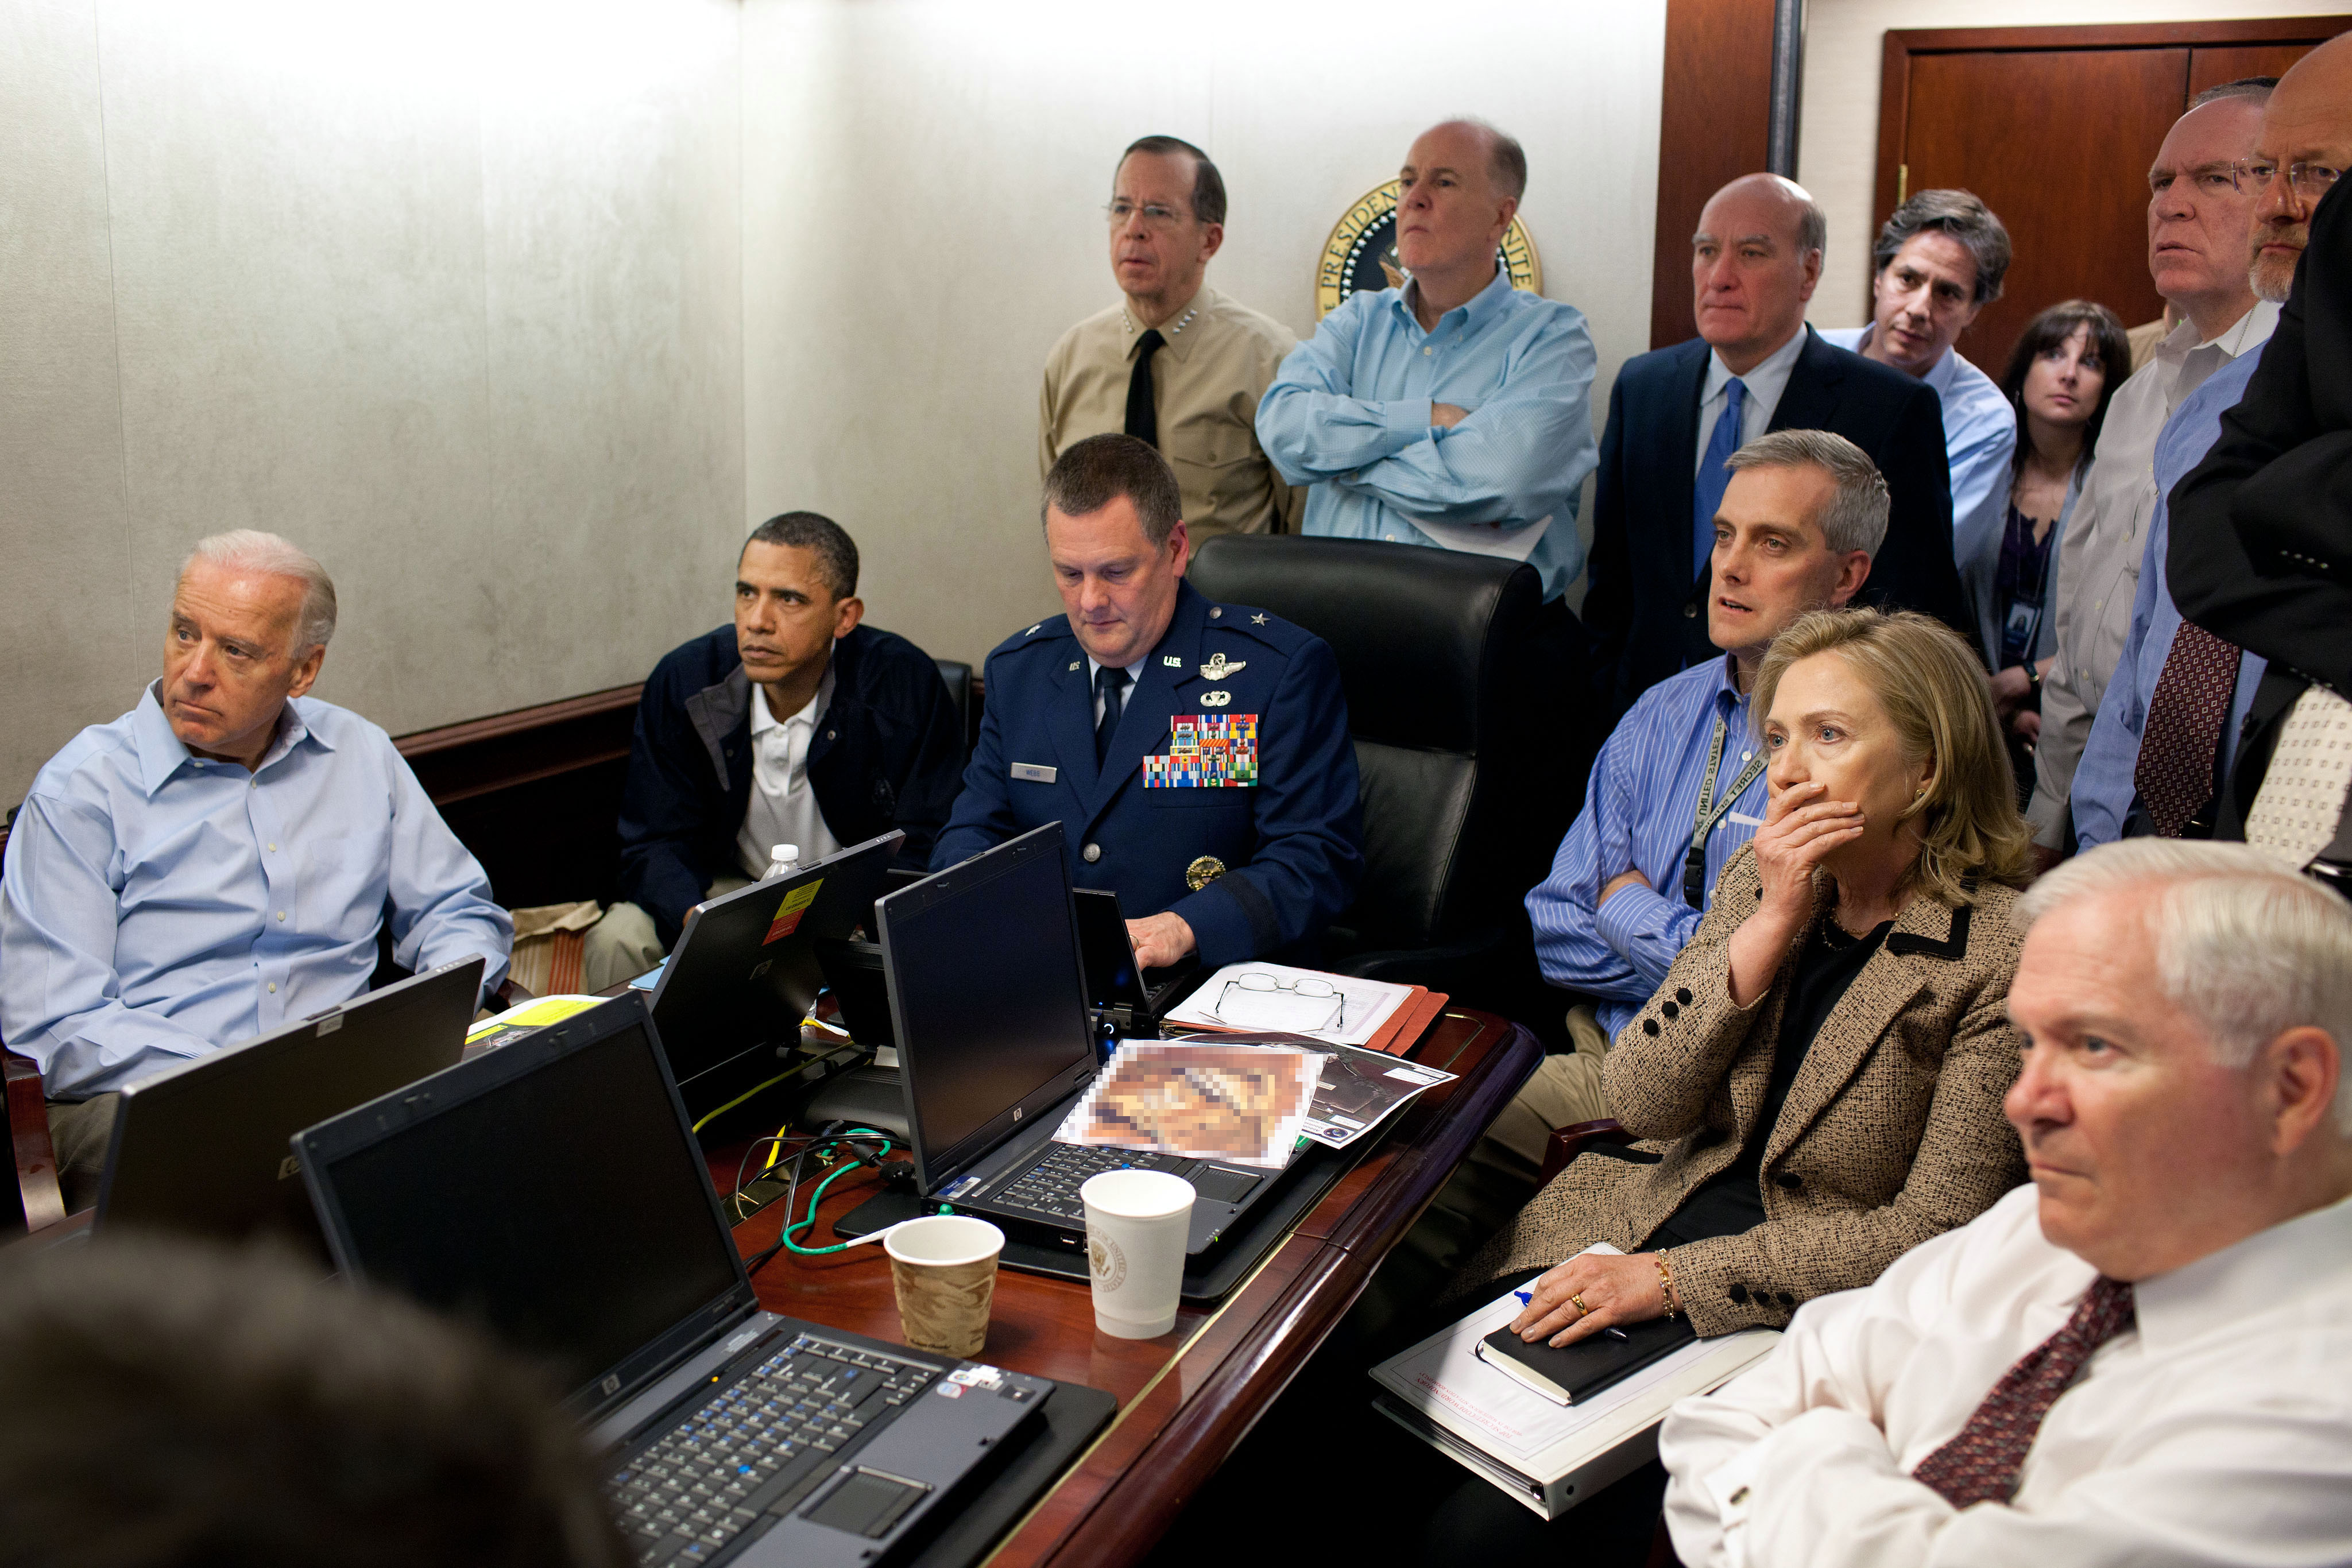 President Barack Obama, Vice President Joe Biden and former Secretary of State Hillary Clinton, along with with members of the national security team, receive an update on the mission against Osama bin Laden in the Situation Room of the White House in Washington, D.C., on May 1, 2011.